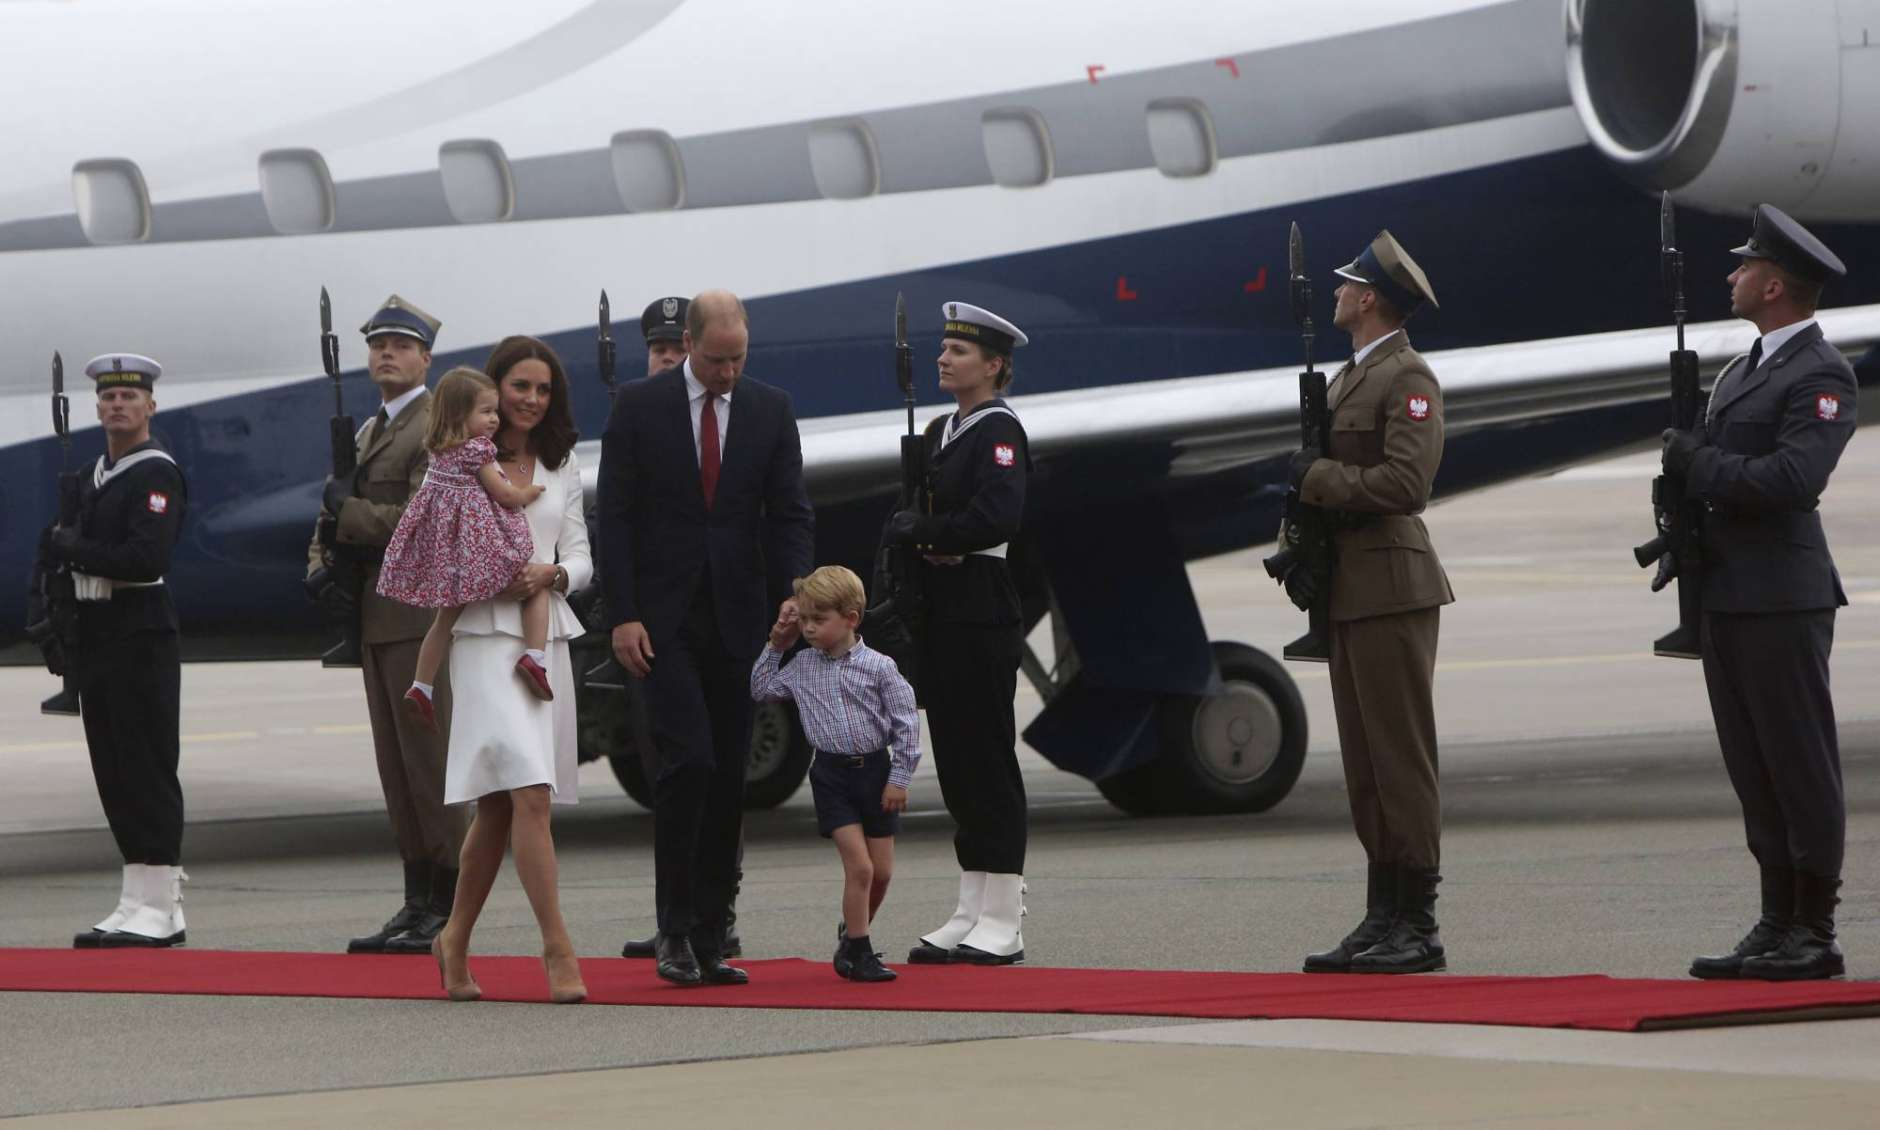 Britain's Kate, the Duchess of Cambridge holding Princess Charlotte, Prince William and Prince George walk past the honor guard, during the arrival ceremony, in Warsaw , Poland, Monday, July 17, 2017. The Duke and Duchess of Cambridge and their children have arrived in Poland, the first leg of a goodwill trip to two European Union nations that seeks to underscore Britain's friendly ties despite its negotiations to leave the bloc. (AP Photo/Czarek Sokolowski)